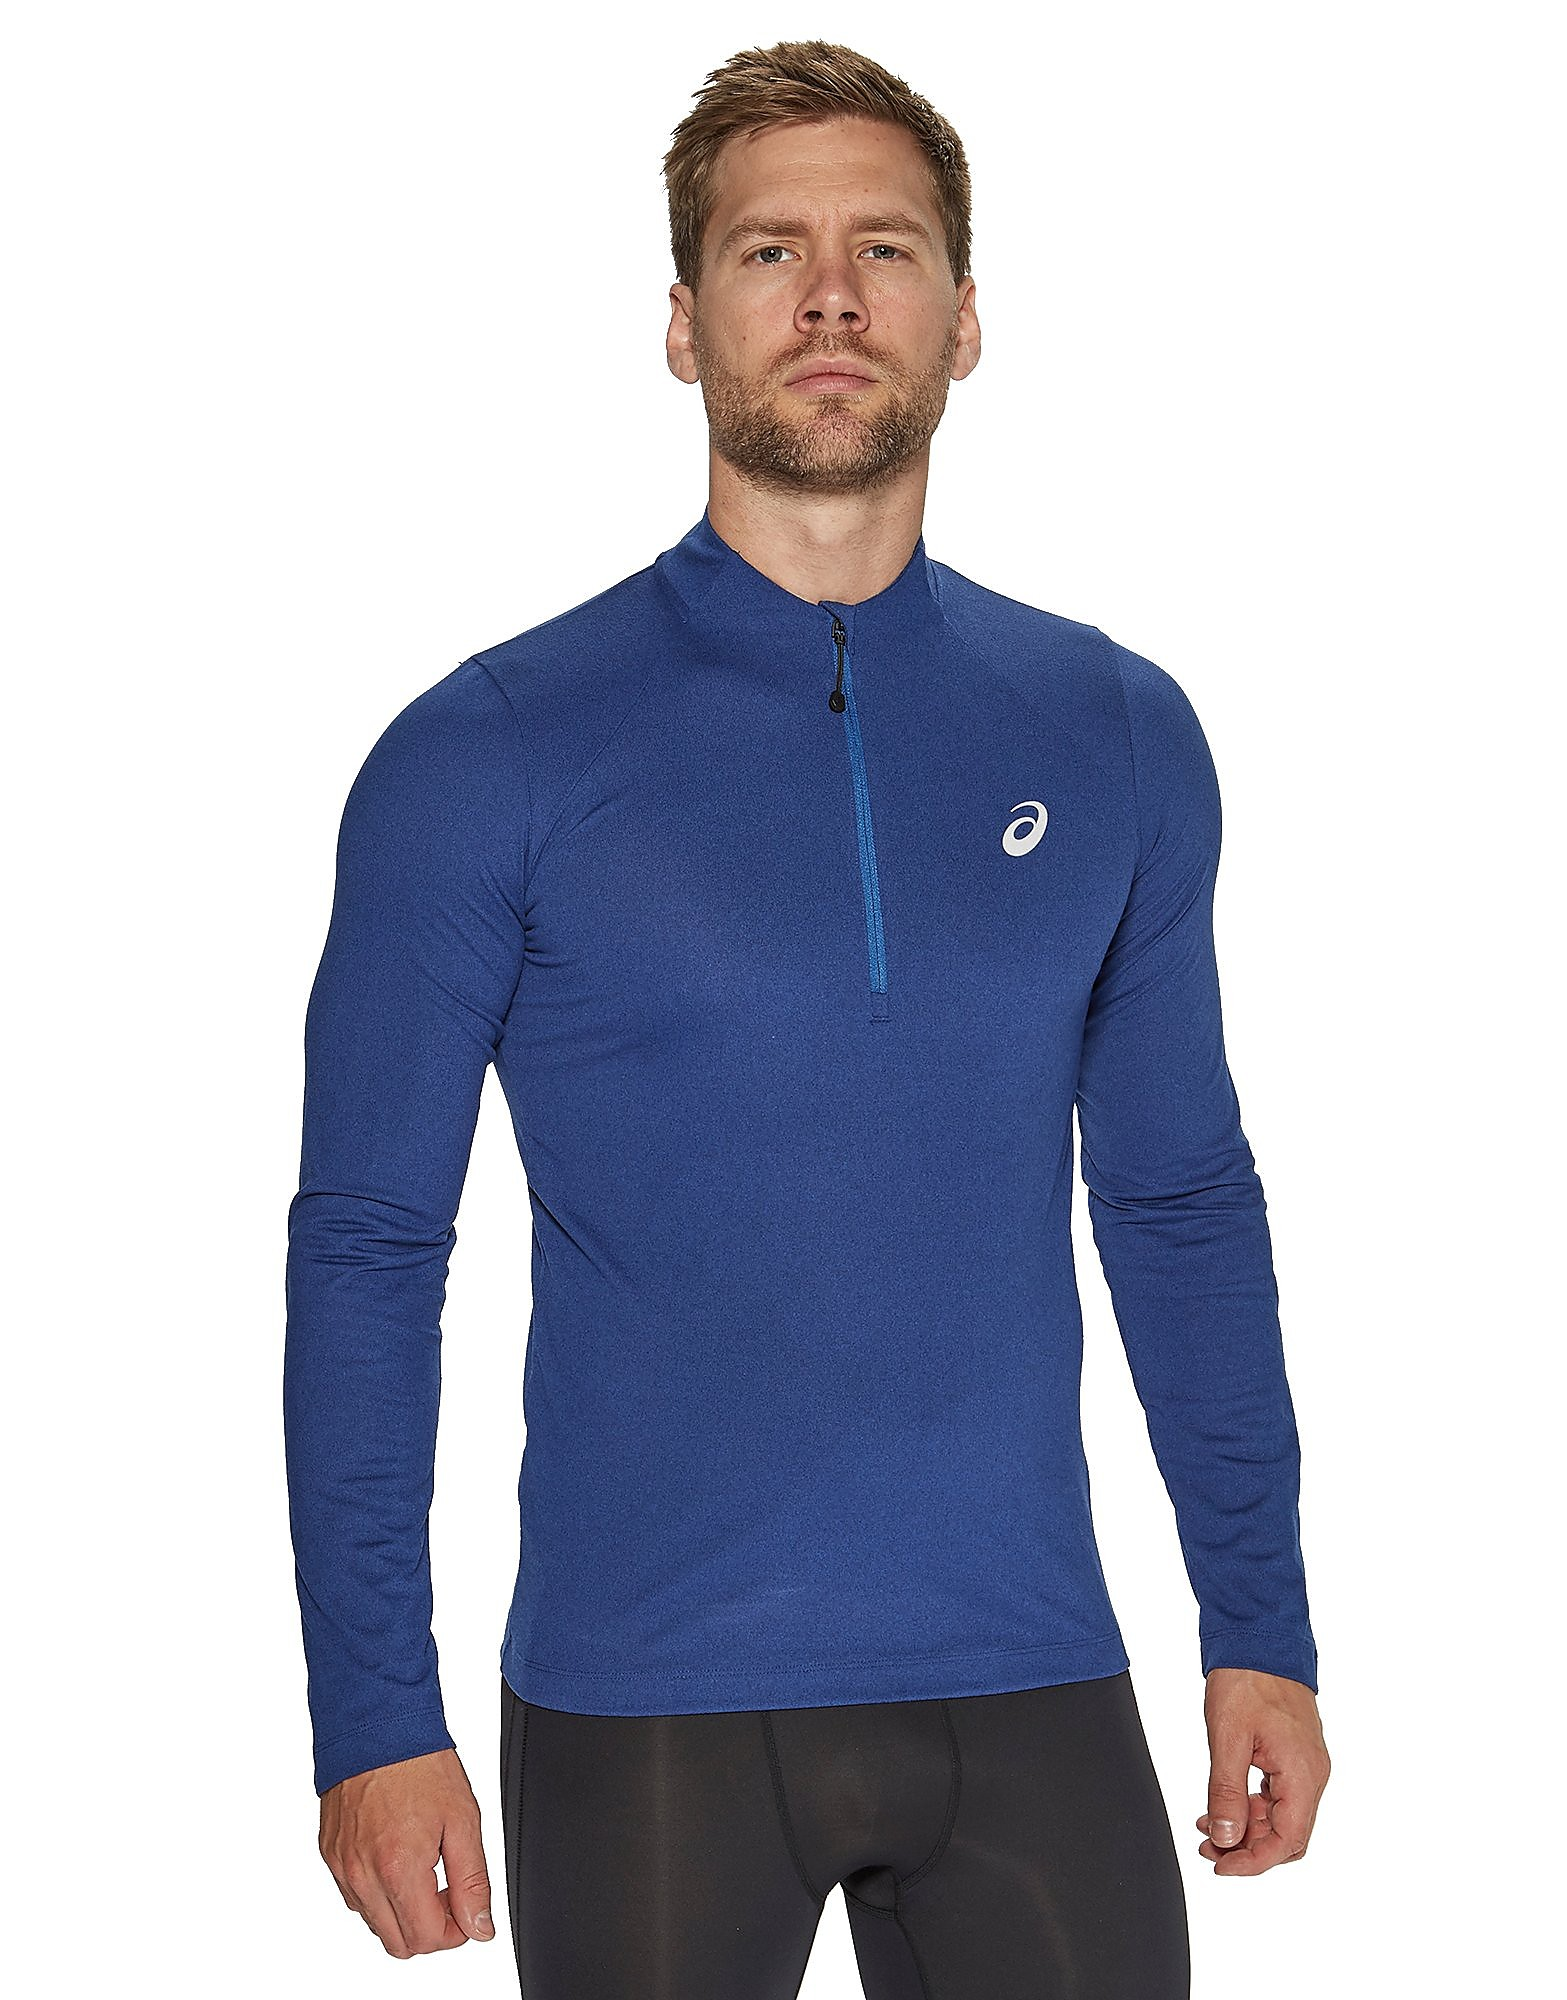 ASICS Long Sleeve 1/2 Zip Top